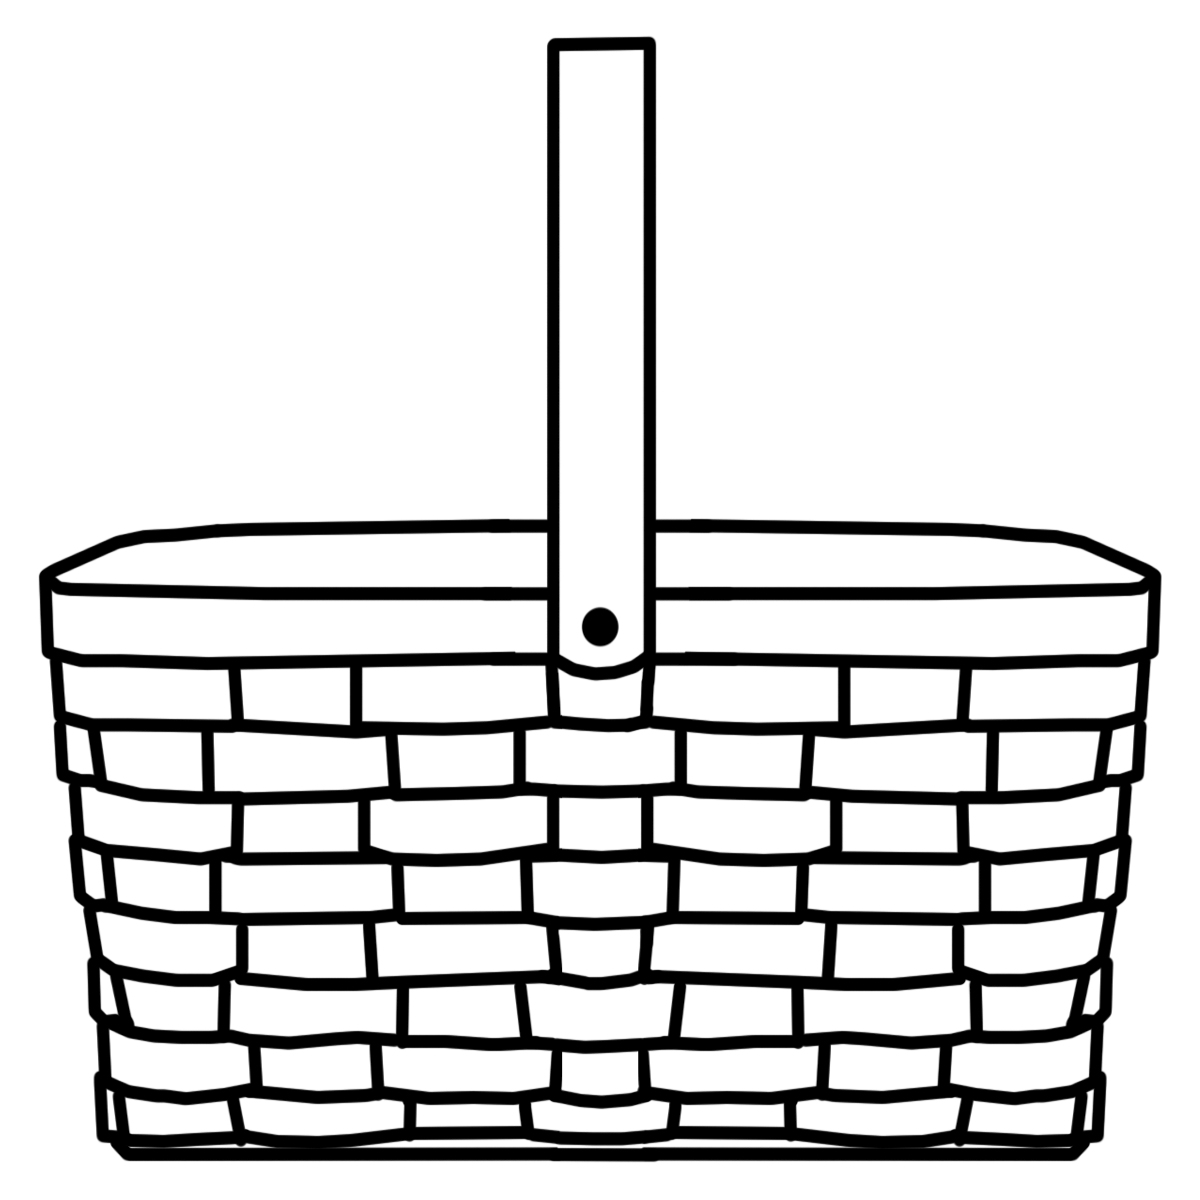 Empty fruit basket clipart black and white graphic free download Basket Clipart Black And White | Free download best Basket Clipart ... graphic free download